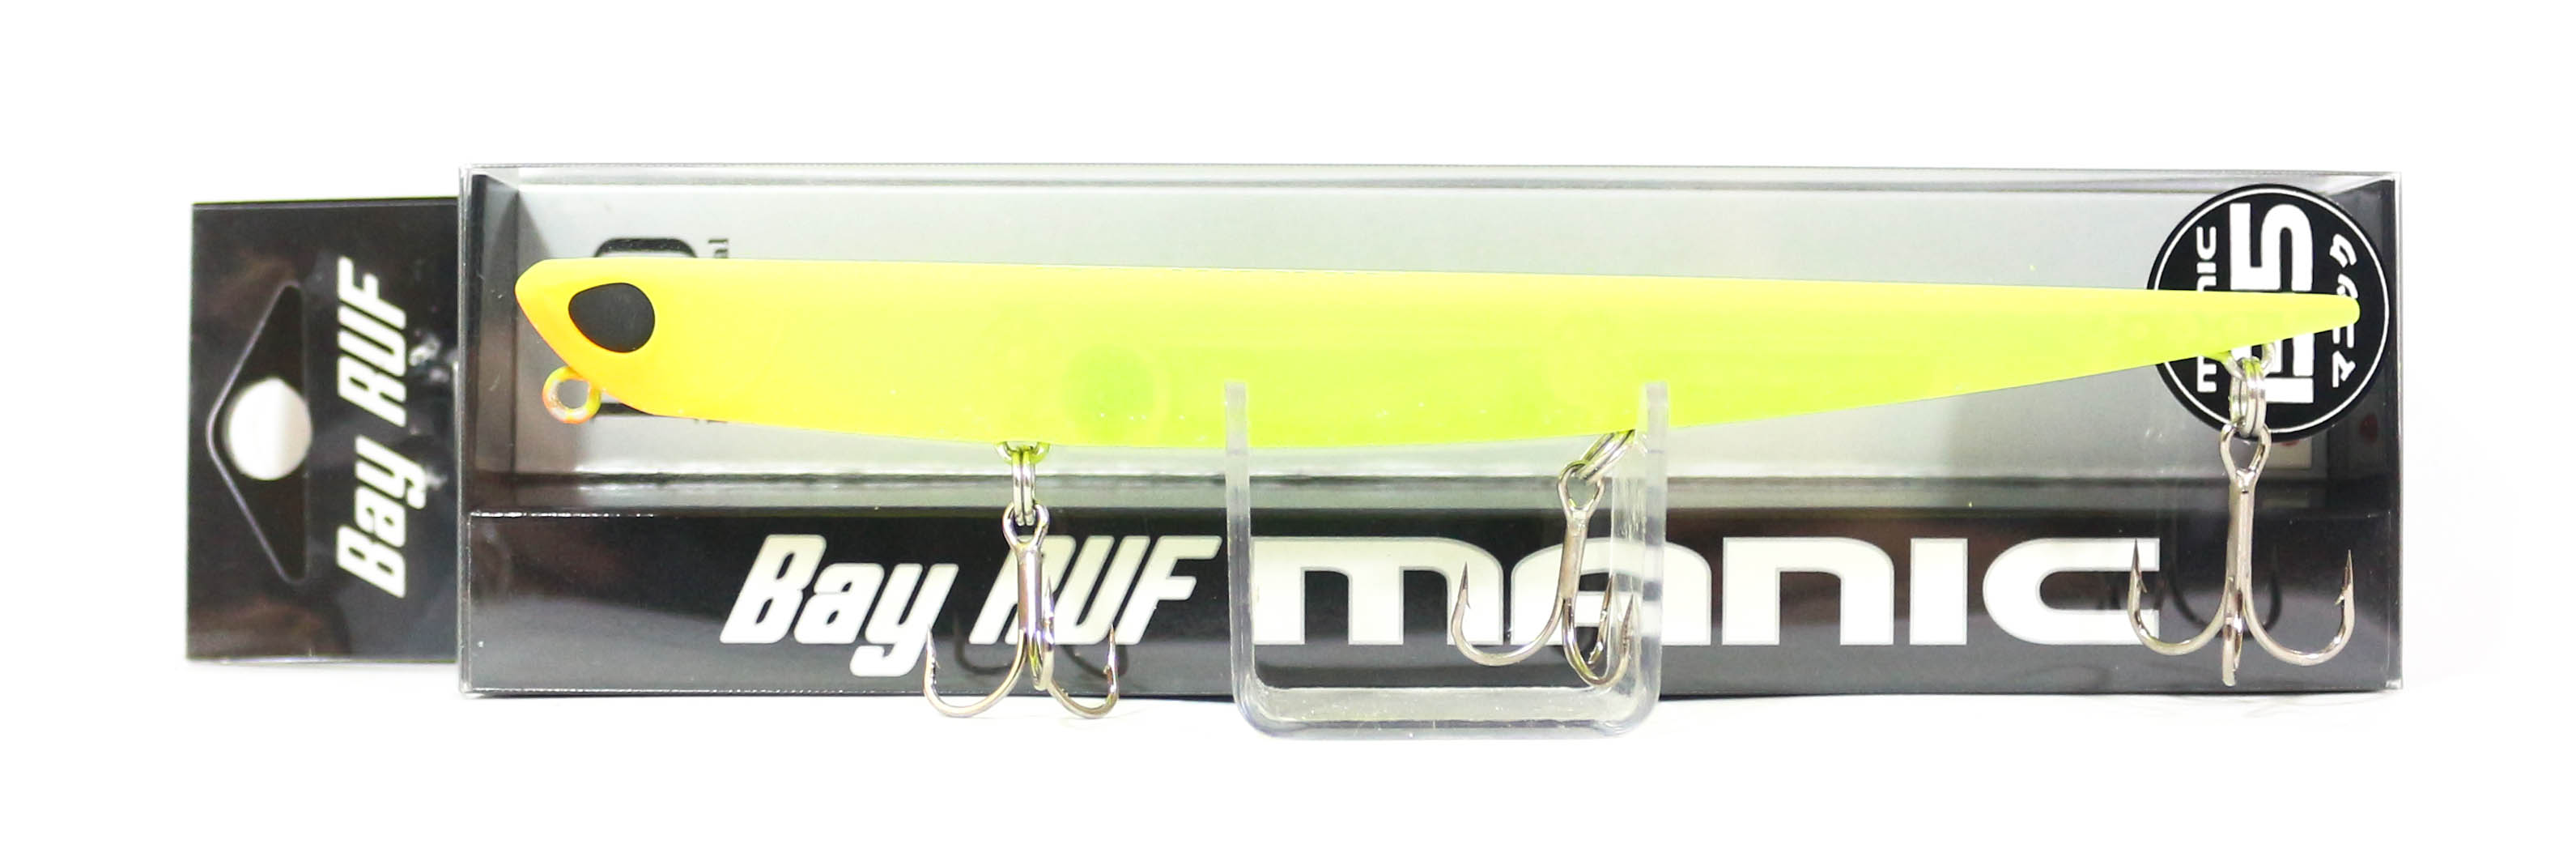 Duo Bay Ruf Manic 135 Pencil Sinking Lure CCC0190 (9179)